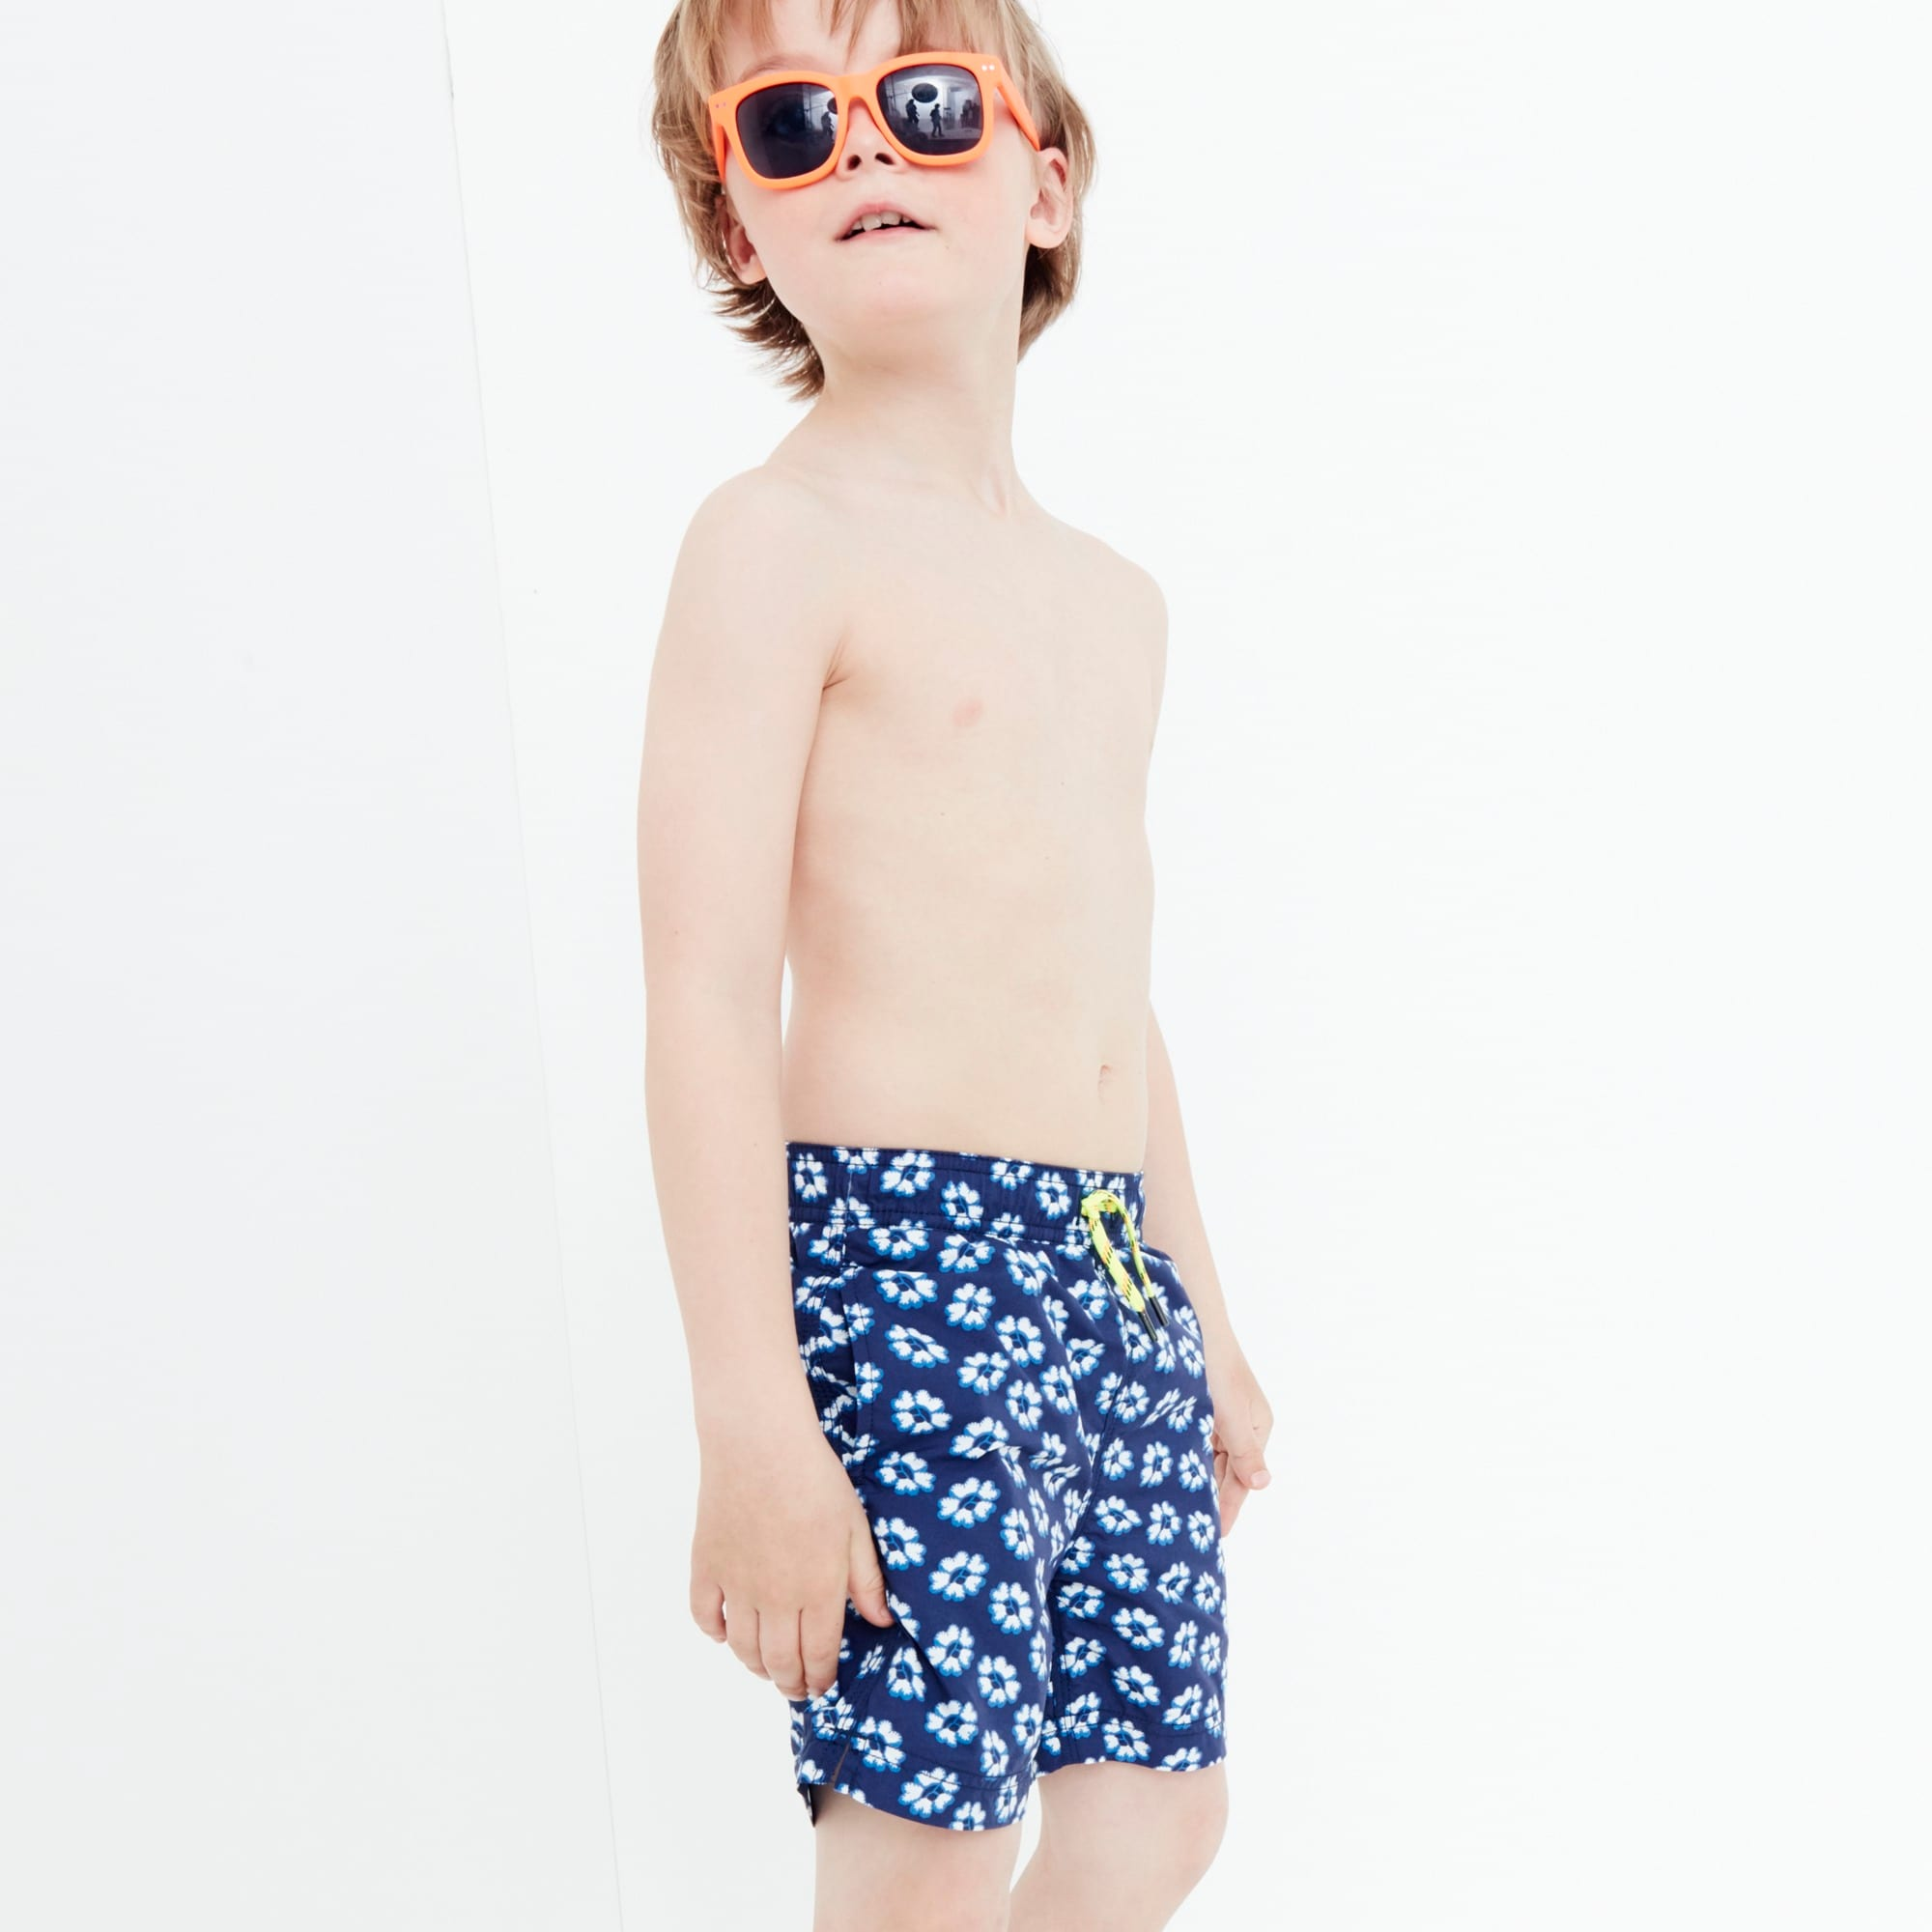 Boys' swim trunk in blurry flowers boy new arrivals c